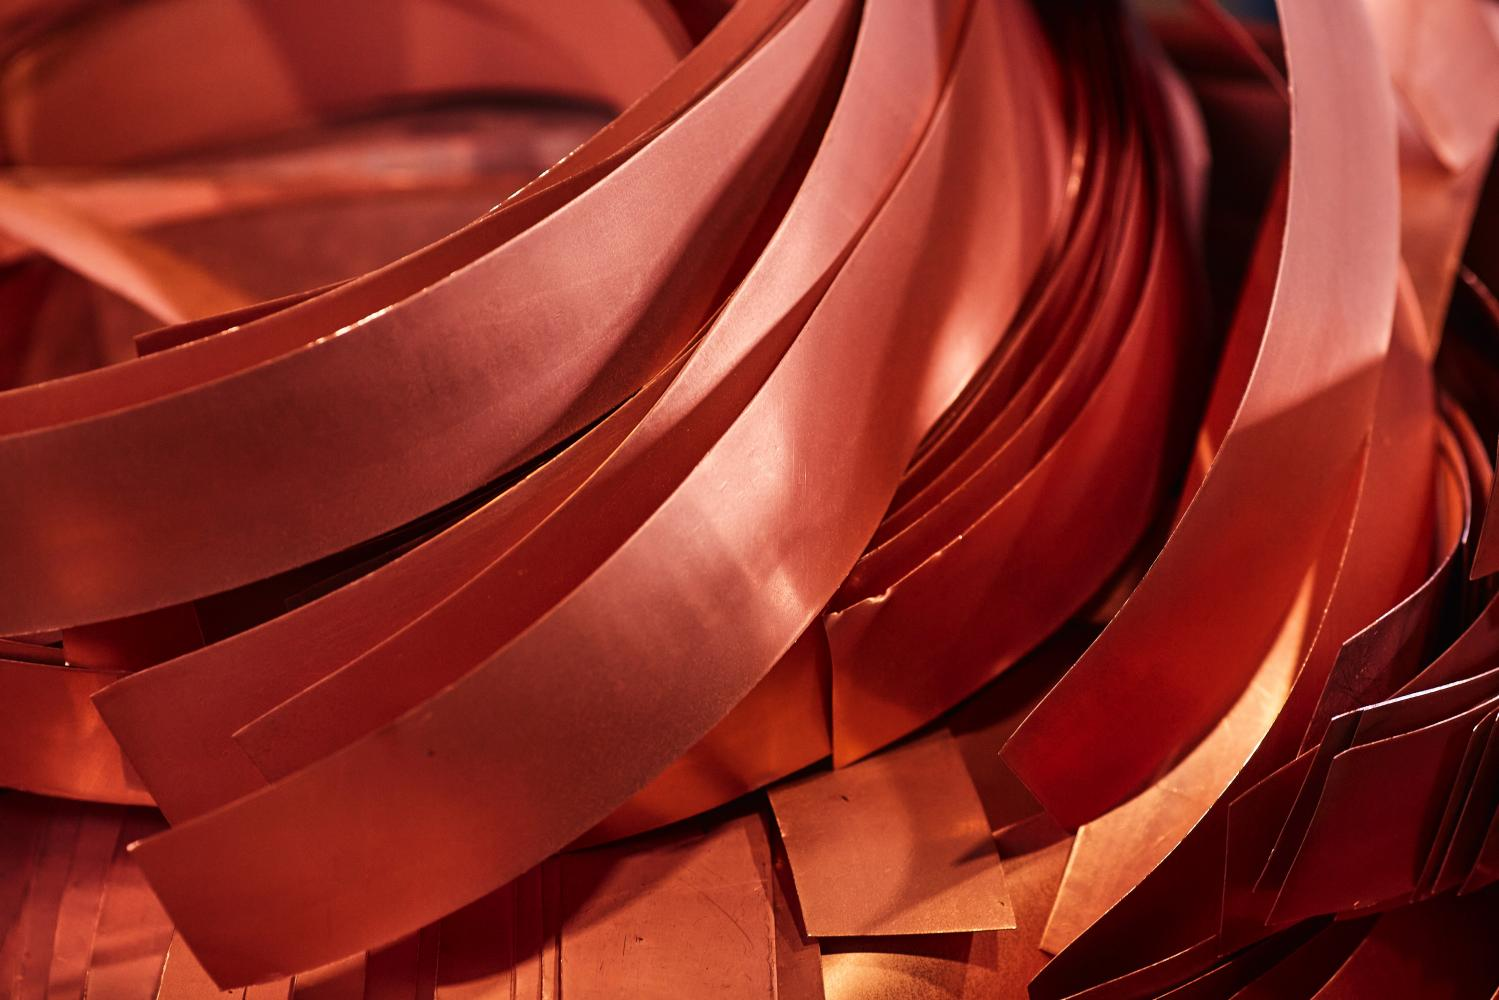 Off-cuts from newly formed copper cathode sheets at the KGHM Polska Miedz SA copper smelting plant in Glogow, Poland.(Photo: Bloomberg)